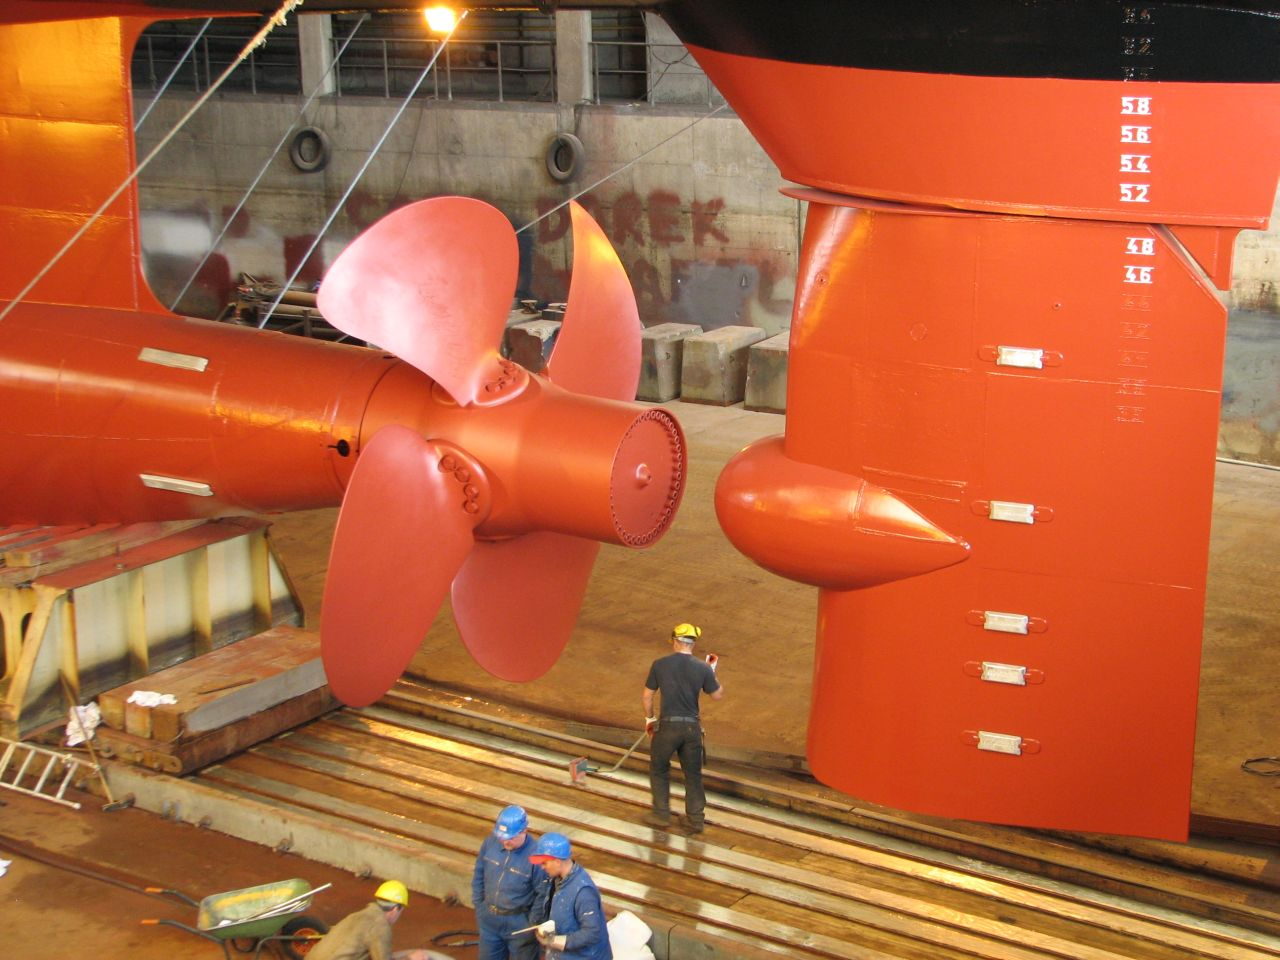 open water propeller characteristics testing engineering essay The open water characteristics of a propeller are estimated in terms of the advance coefficient j  engineering, vol7(4), 2007, pp129-137 4) m a.